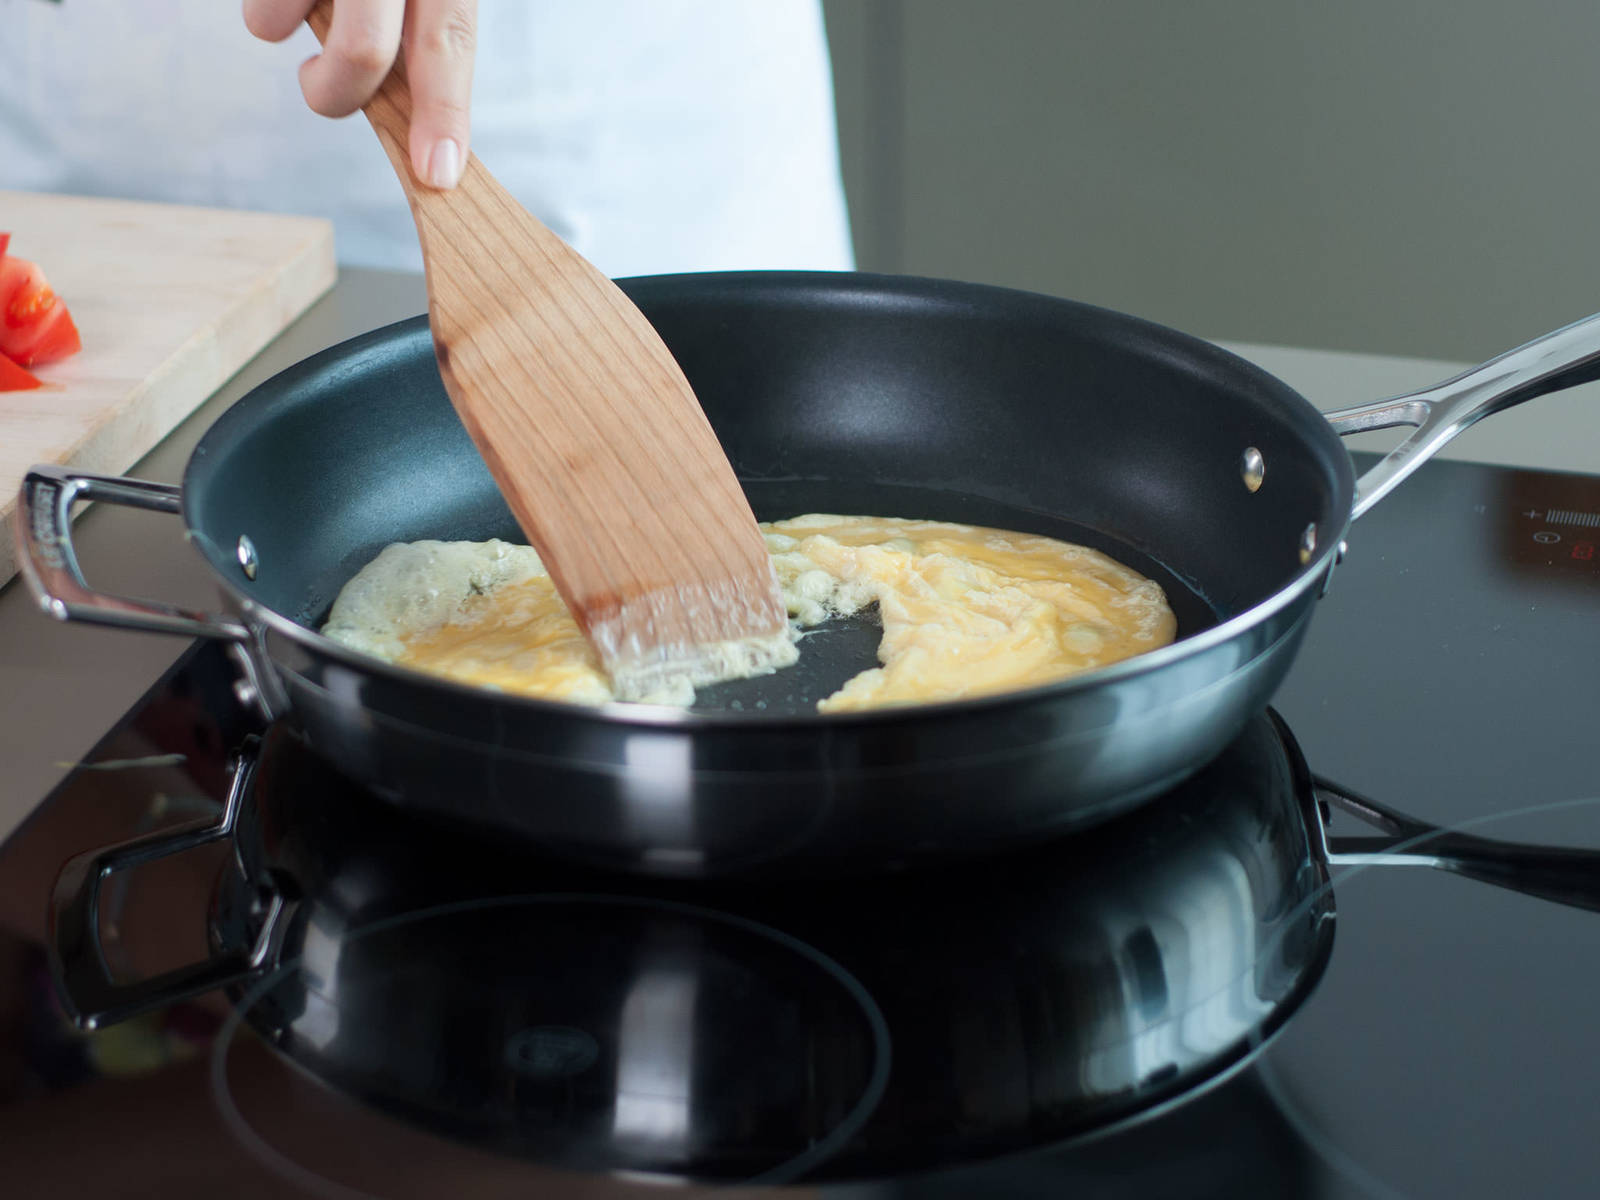 Beat eggs with a fork. Then heat some vegetable oil in a frying pan over high heat. Once oil is hot, pour in eggs and stir quickly. Continue to cook until eggs are set, then transfer eggs to a plate and set aside.